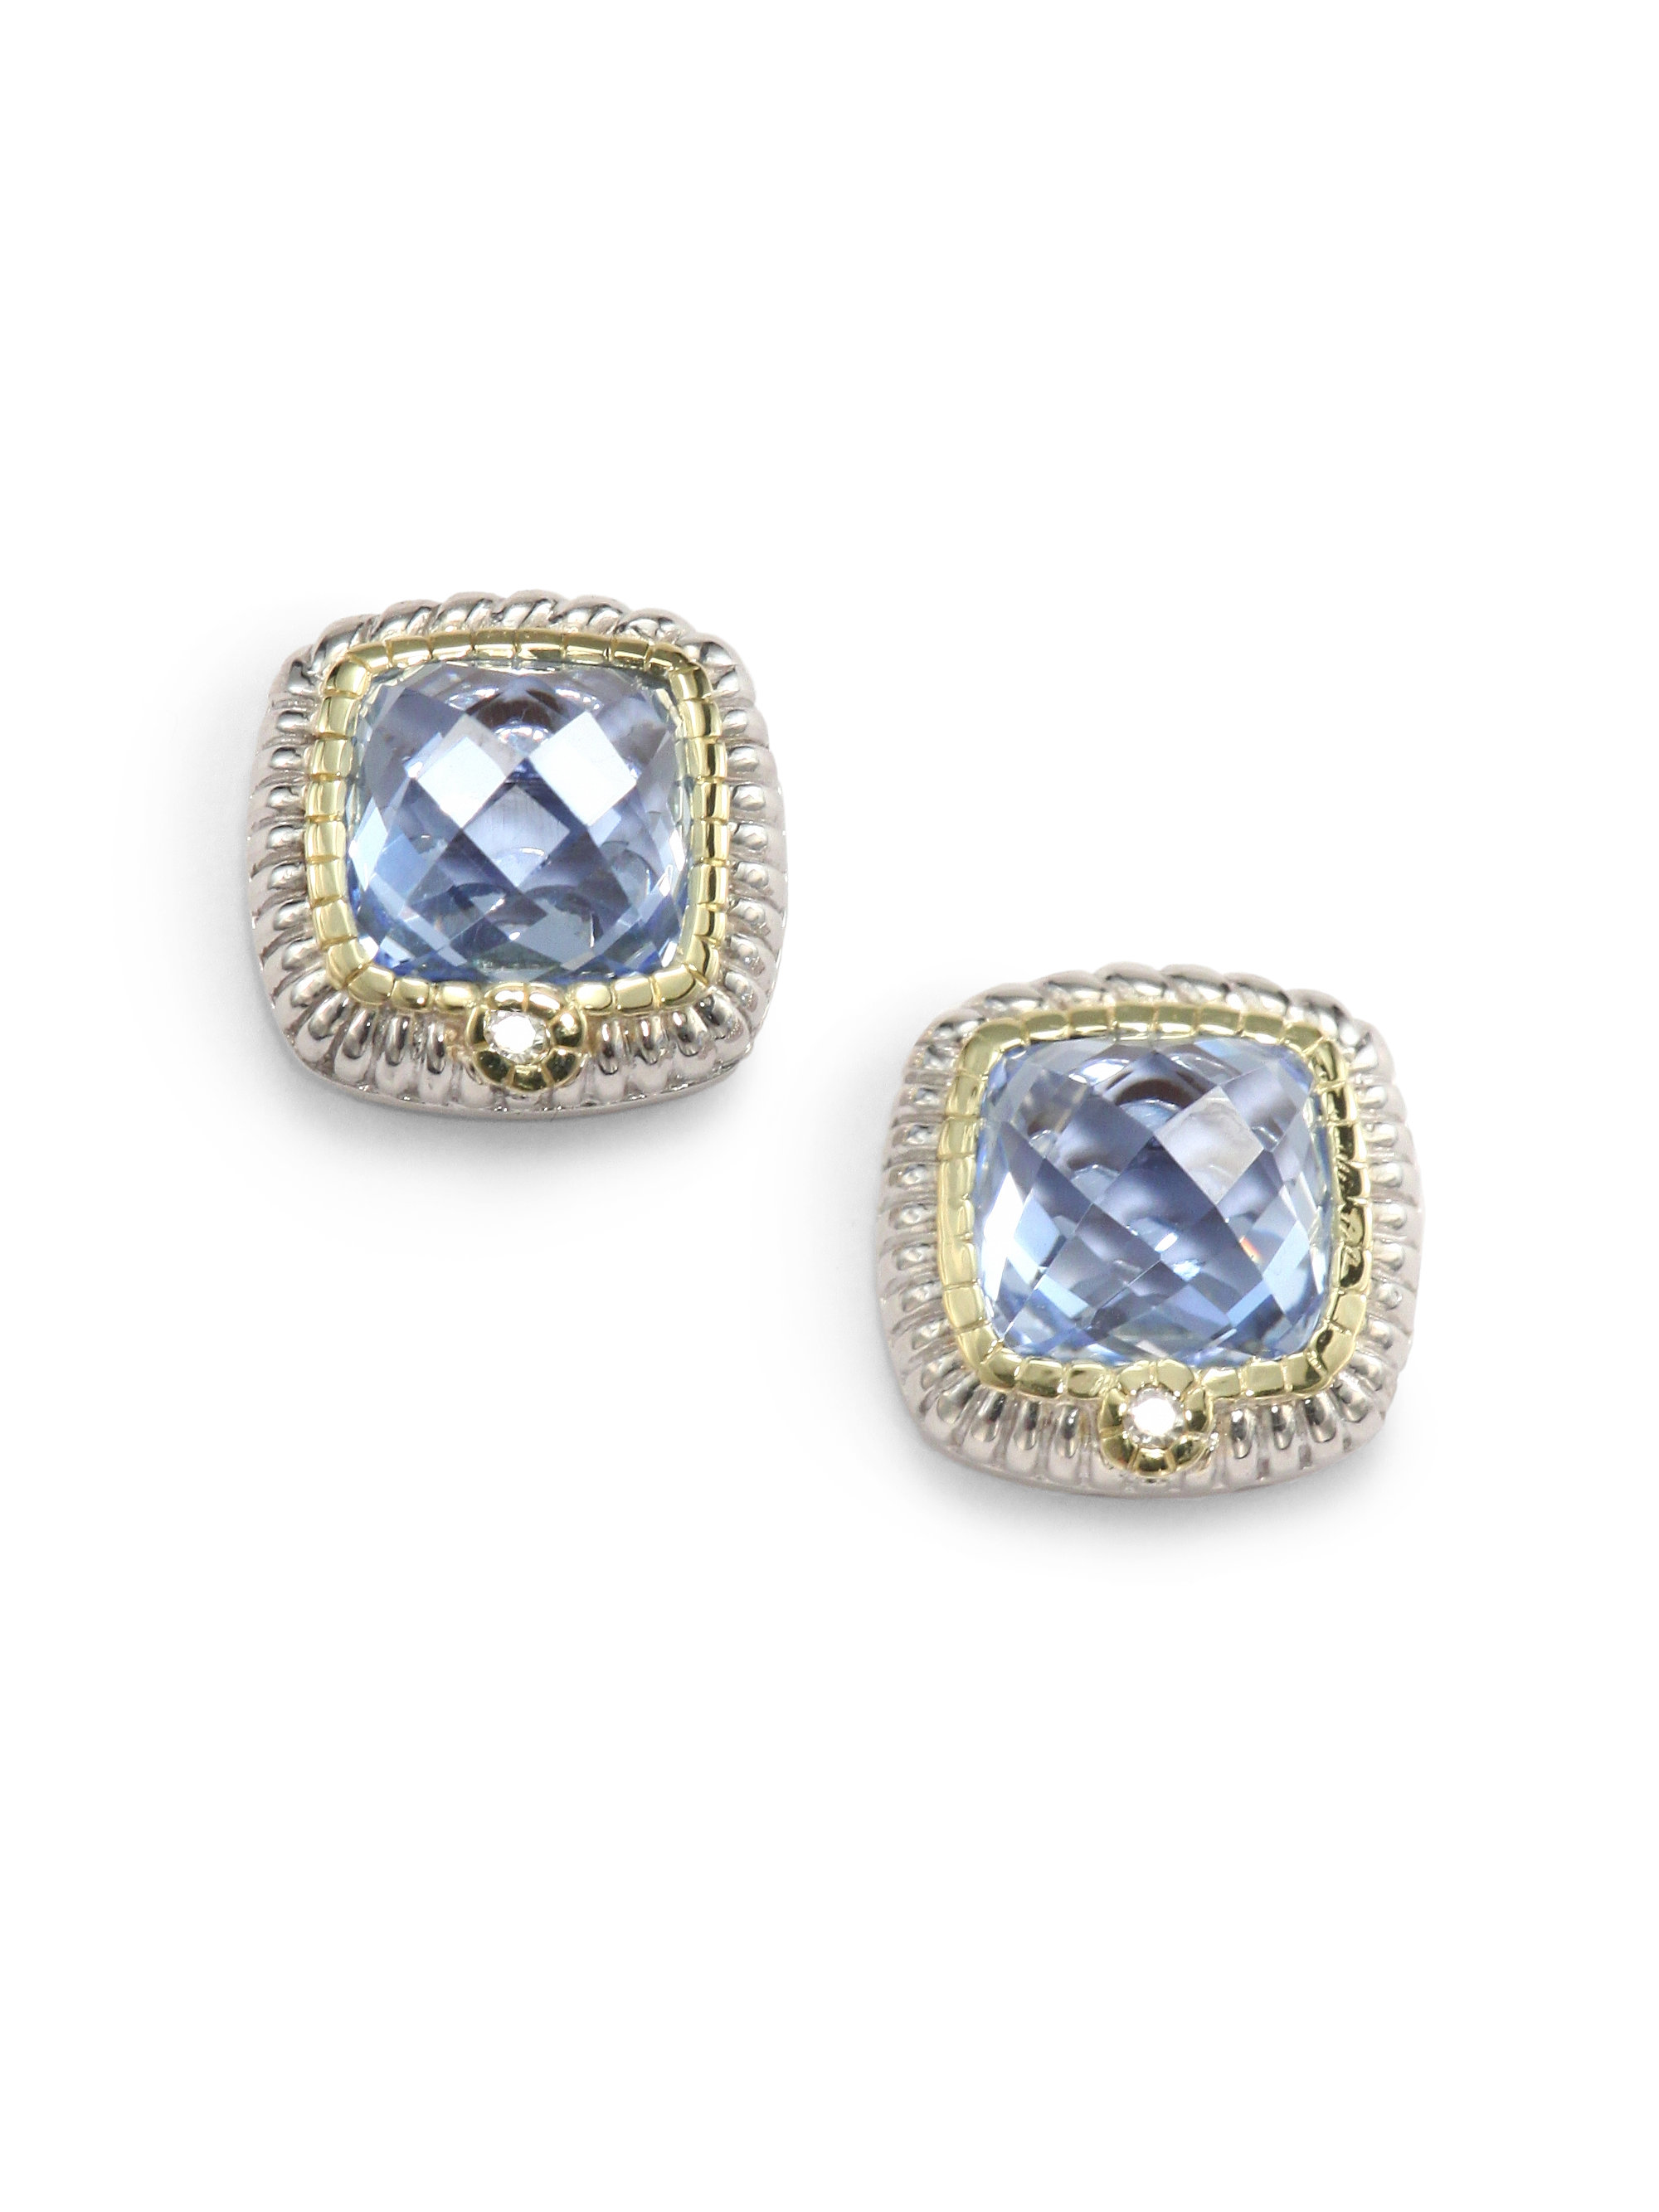 tw earrings princess stud studs cut topaz jewellery earring blue carat diamond l